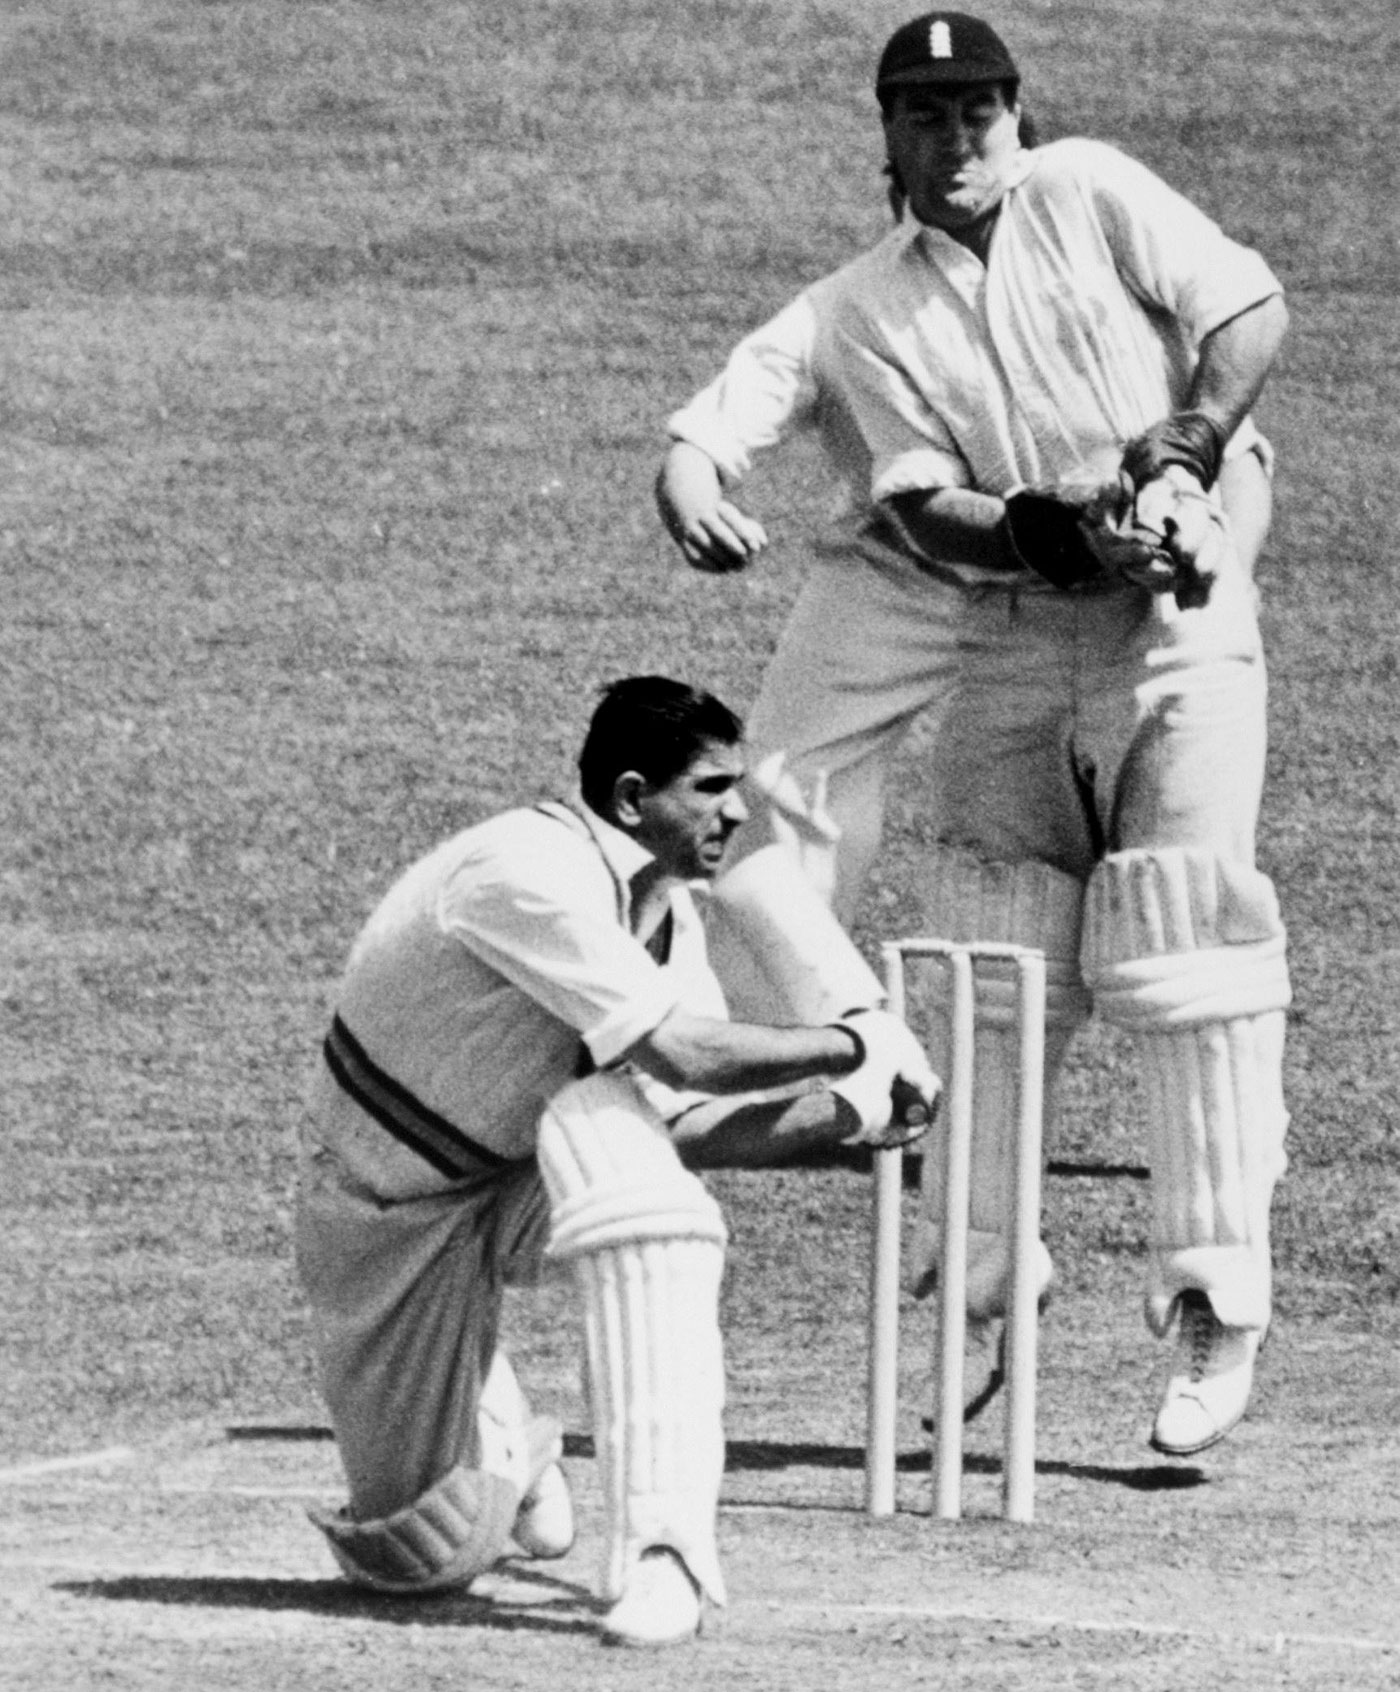 Recalled to the India team for the second Test, at Lord's, Vinoo Mankad made 72 and 184 and took 5 for 196